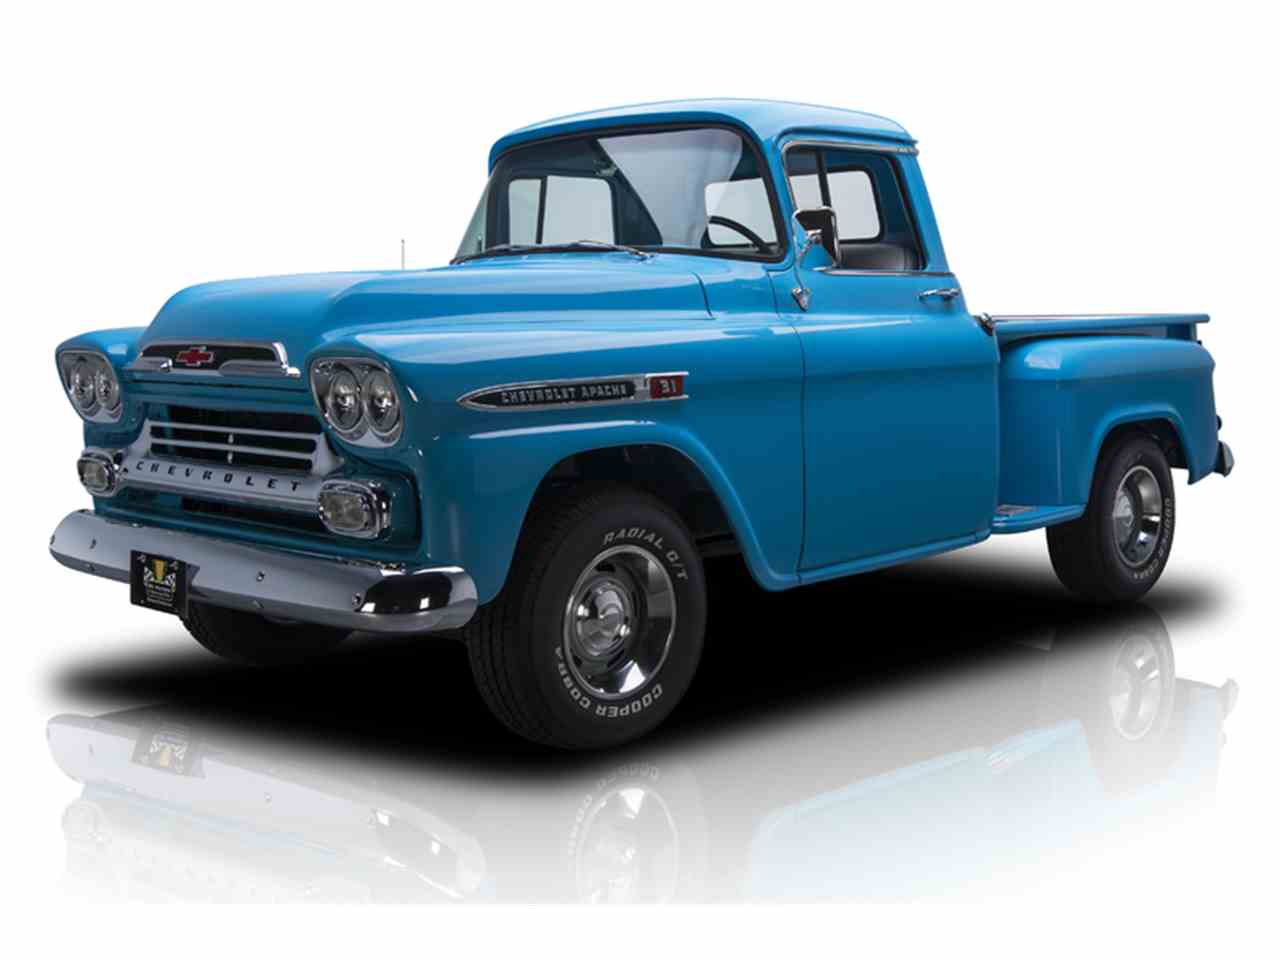 Truck 56 chevy truck : 1957 to 1959 Chevrolet Apache for Sale on ClassicCars.com